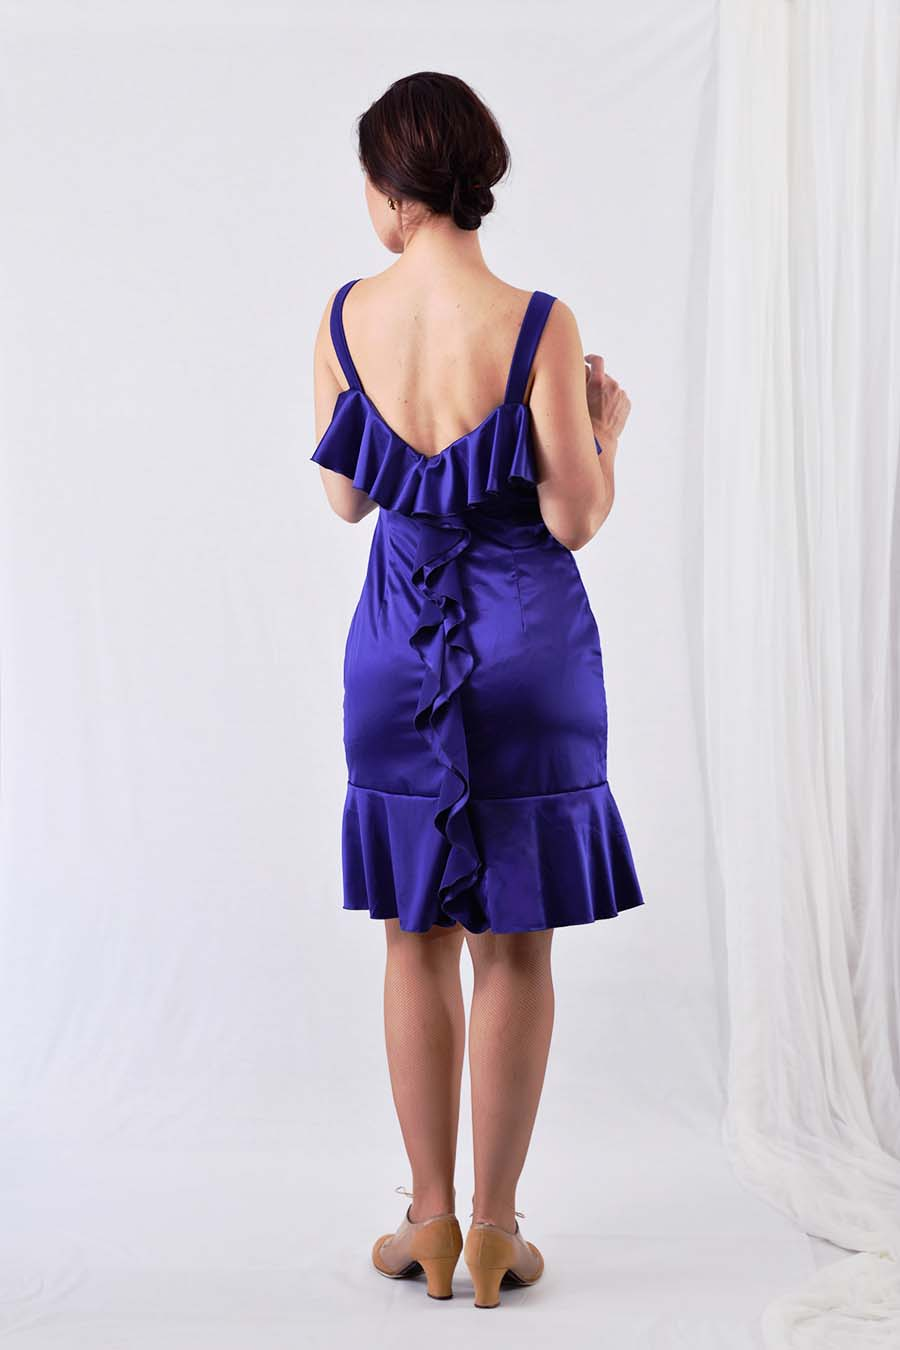 Satin cocktail dress in blue with ruffles from back